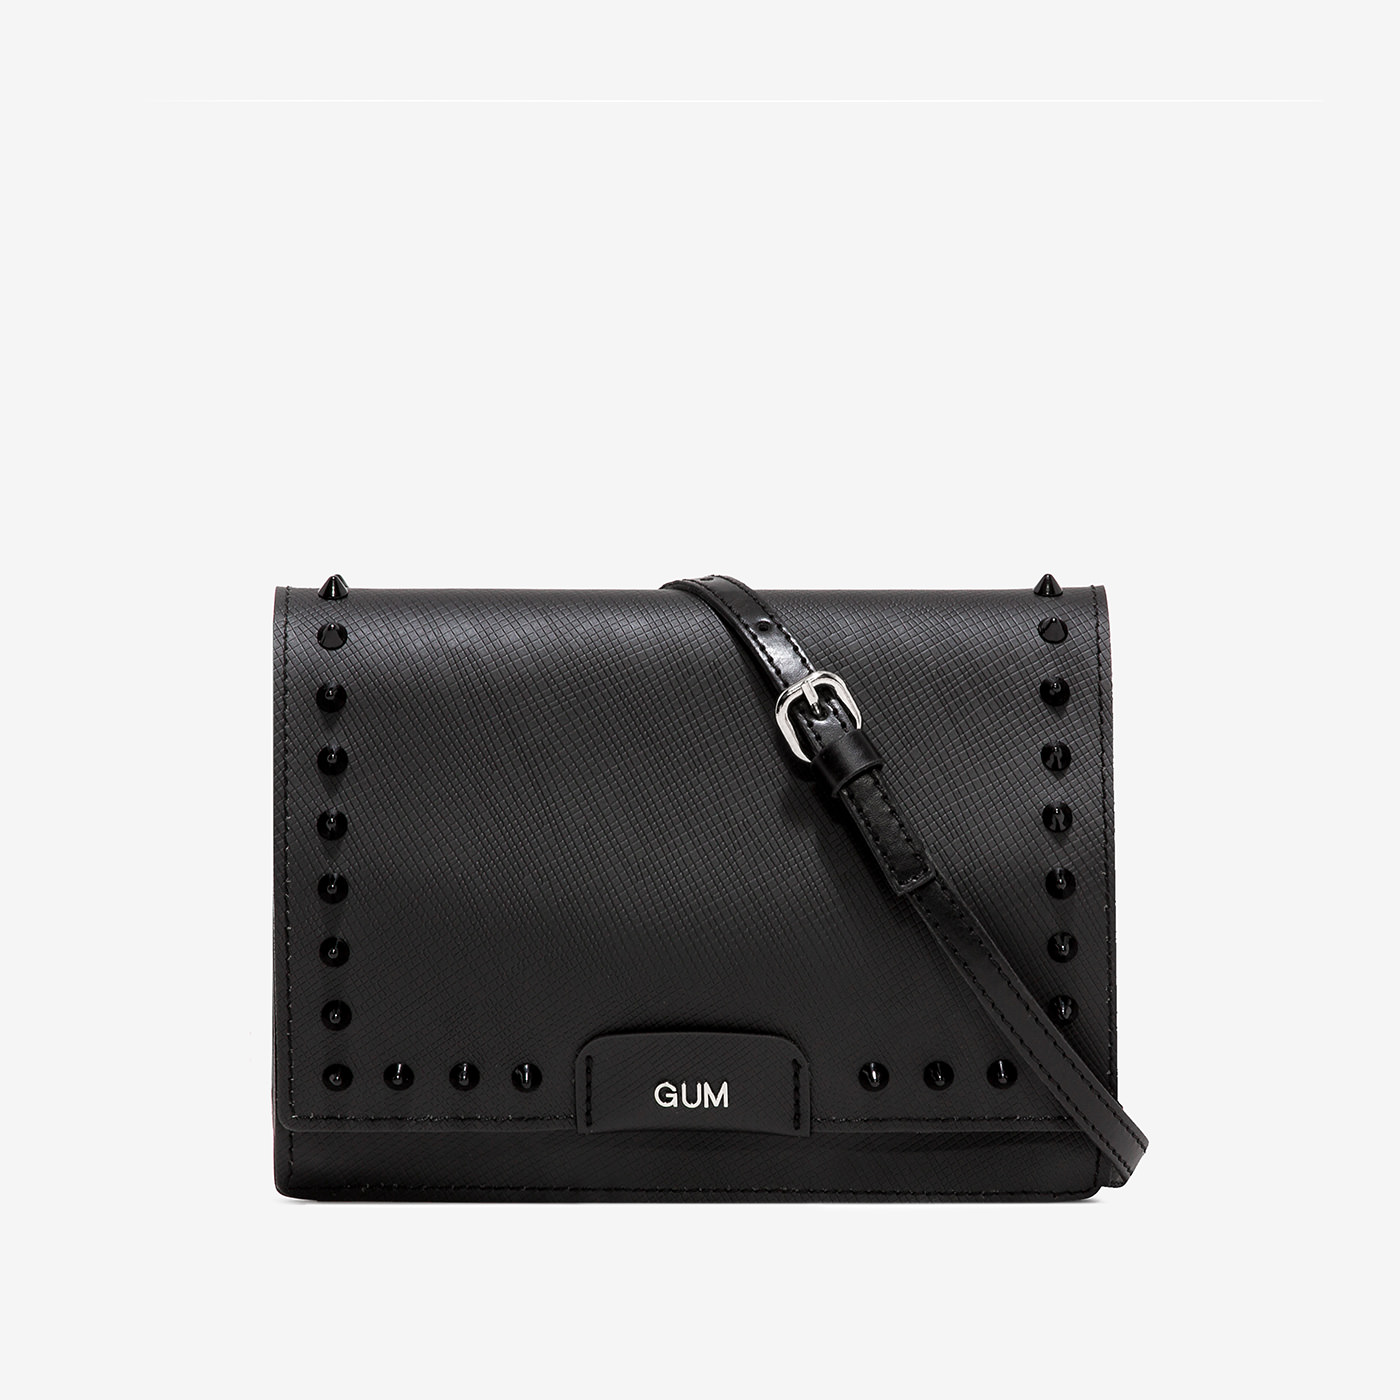 GUM: BORSA DOLLY PICCOLA